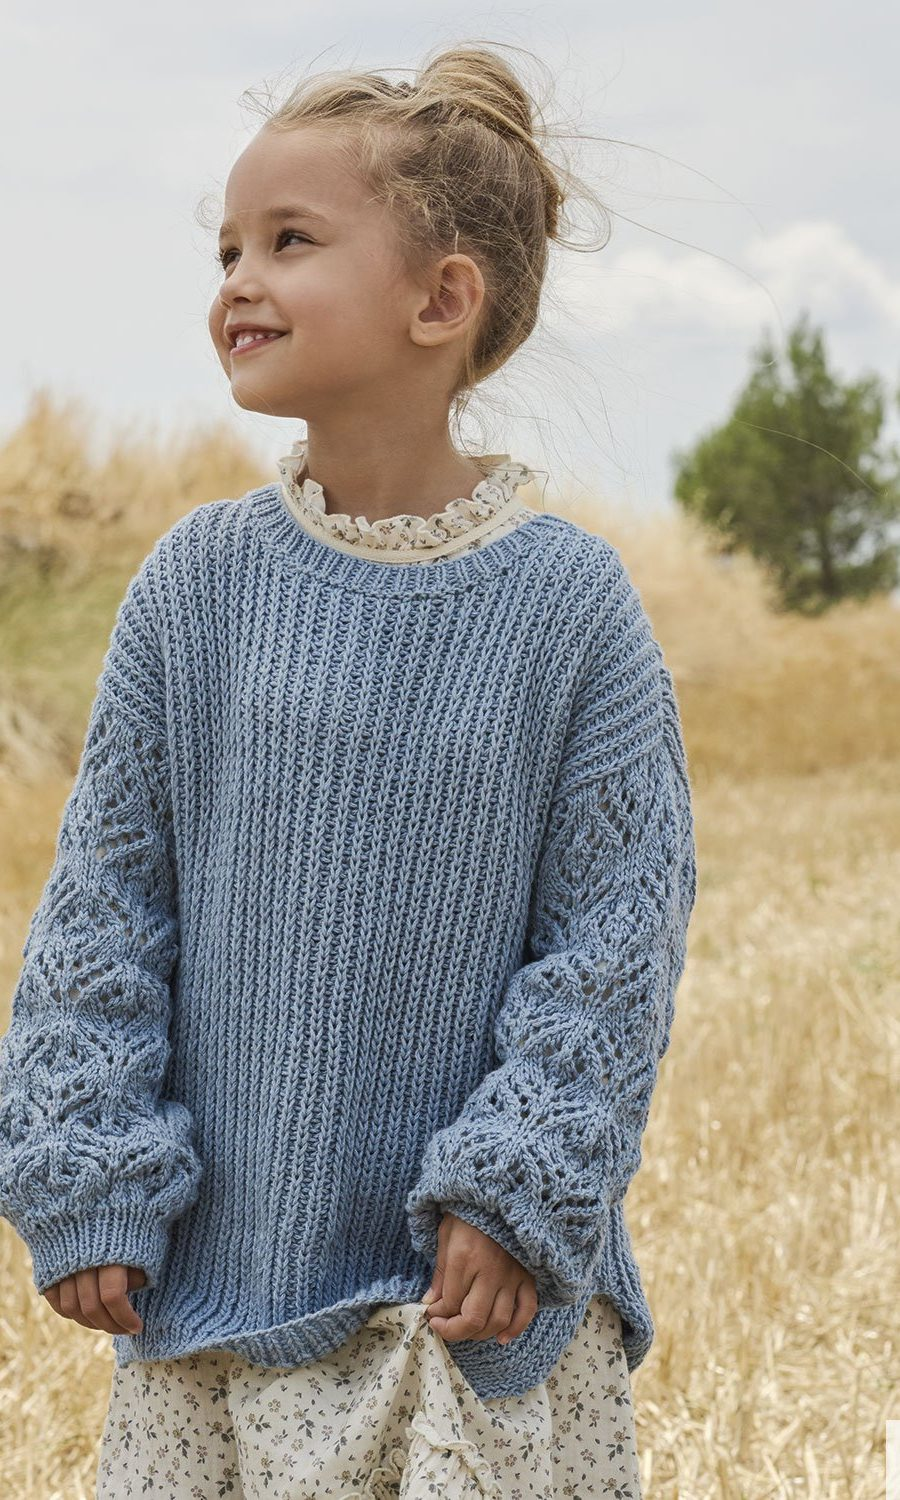 pattern-knit-crochet-kids-sweater-spring-summer-katia-6167-12-g